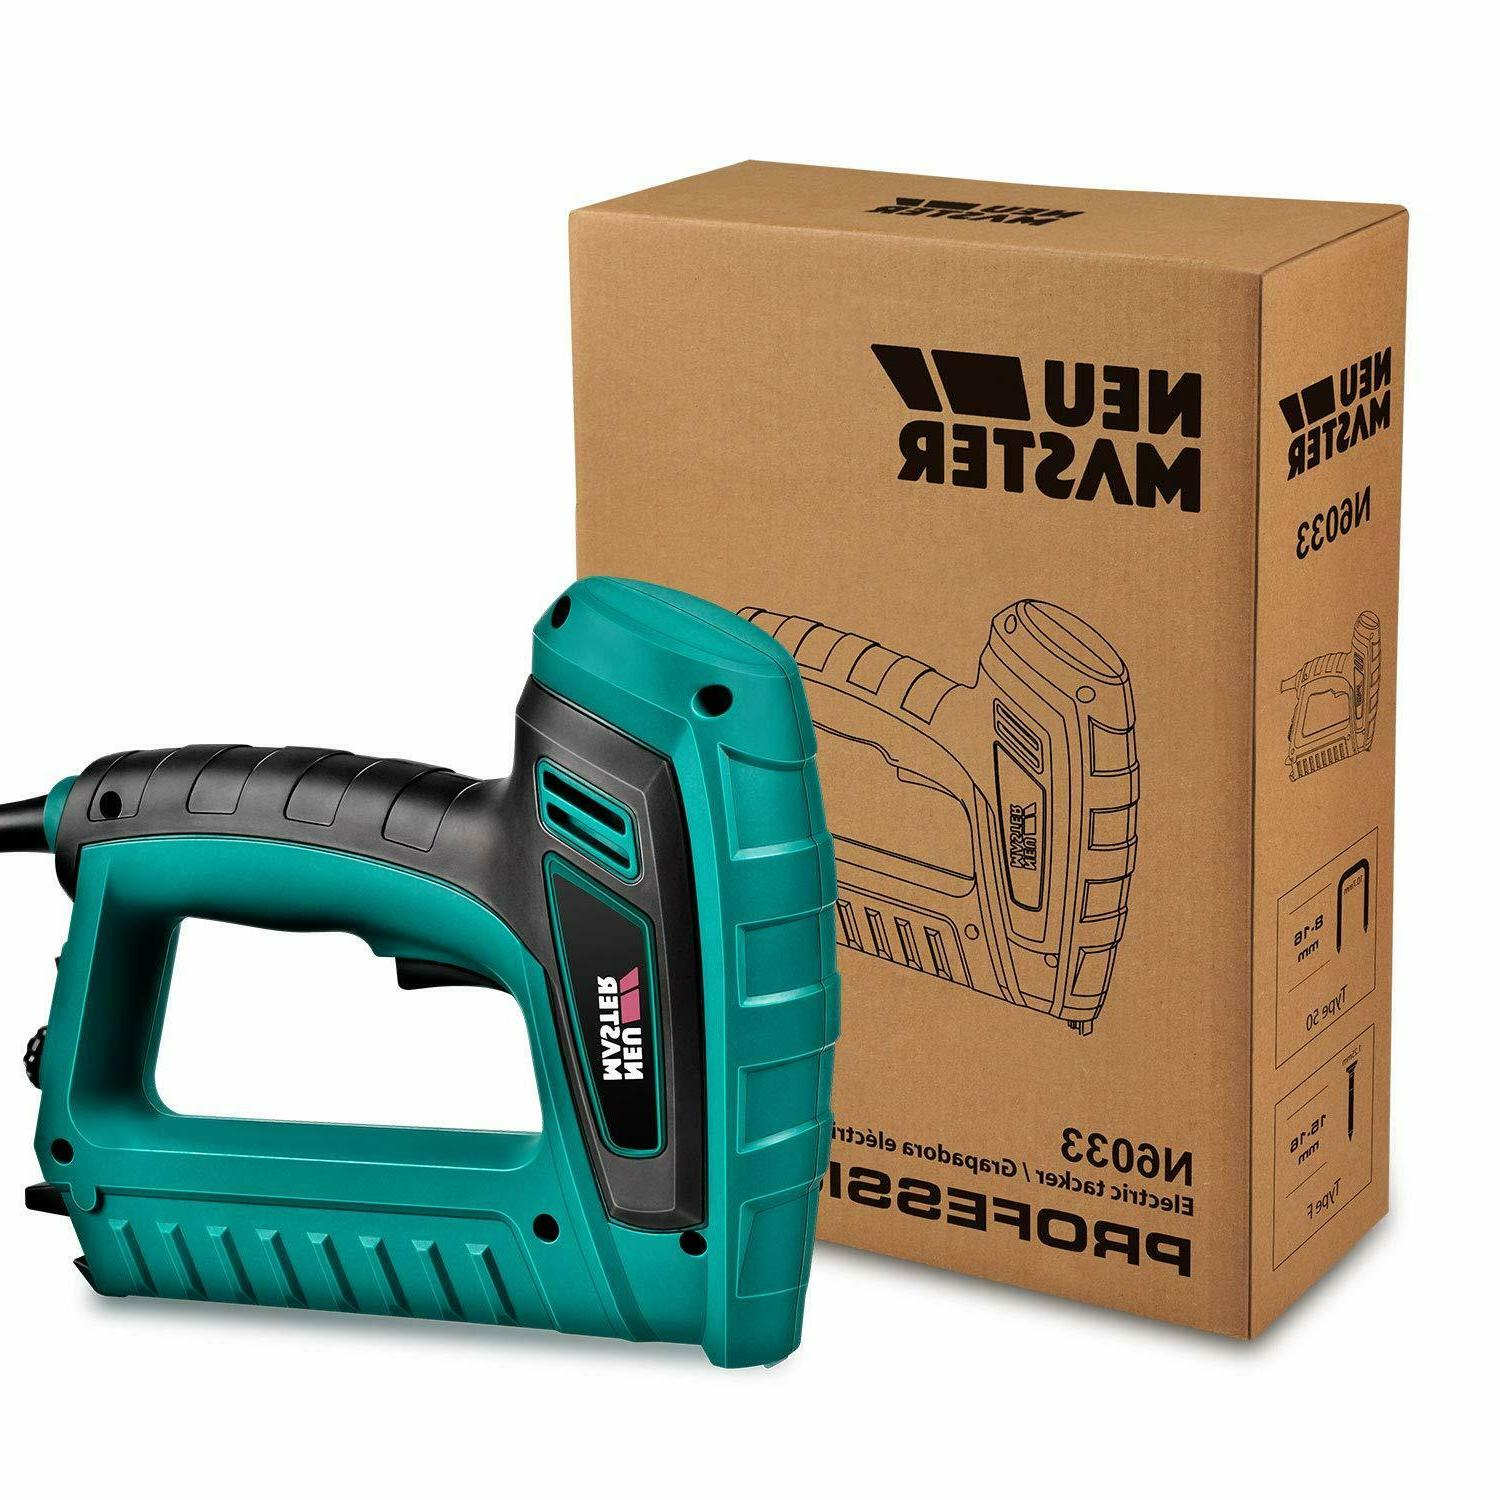 NEU N6033, Electric Brad Nailer with and Power